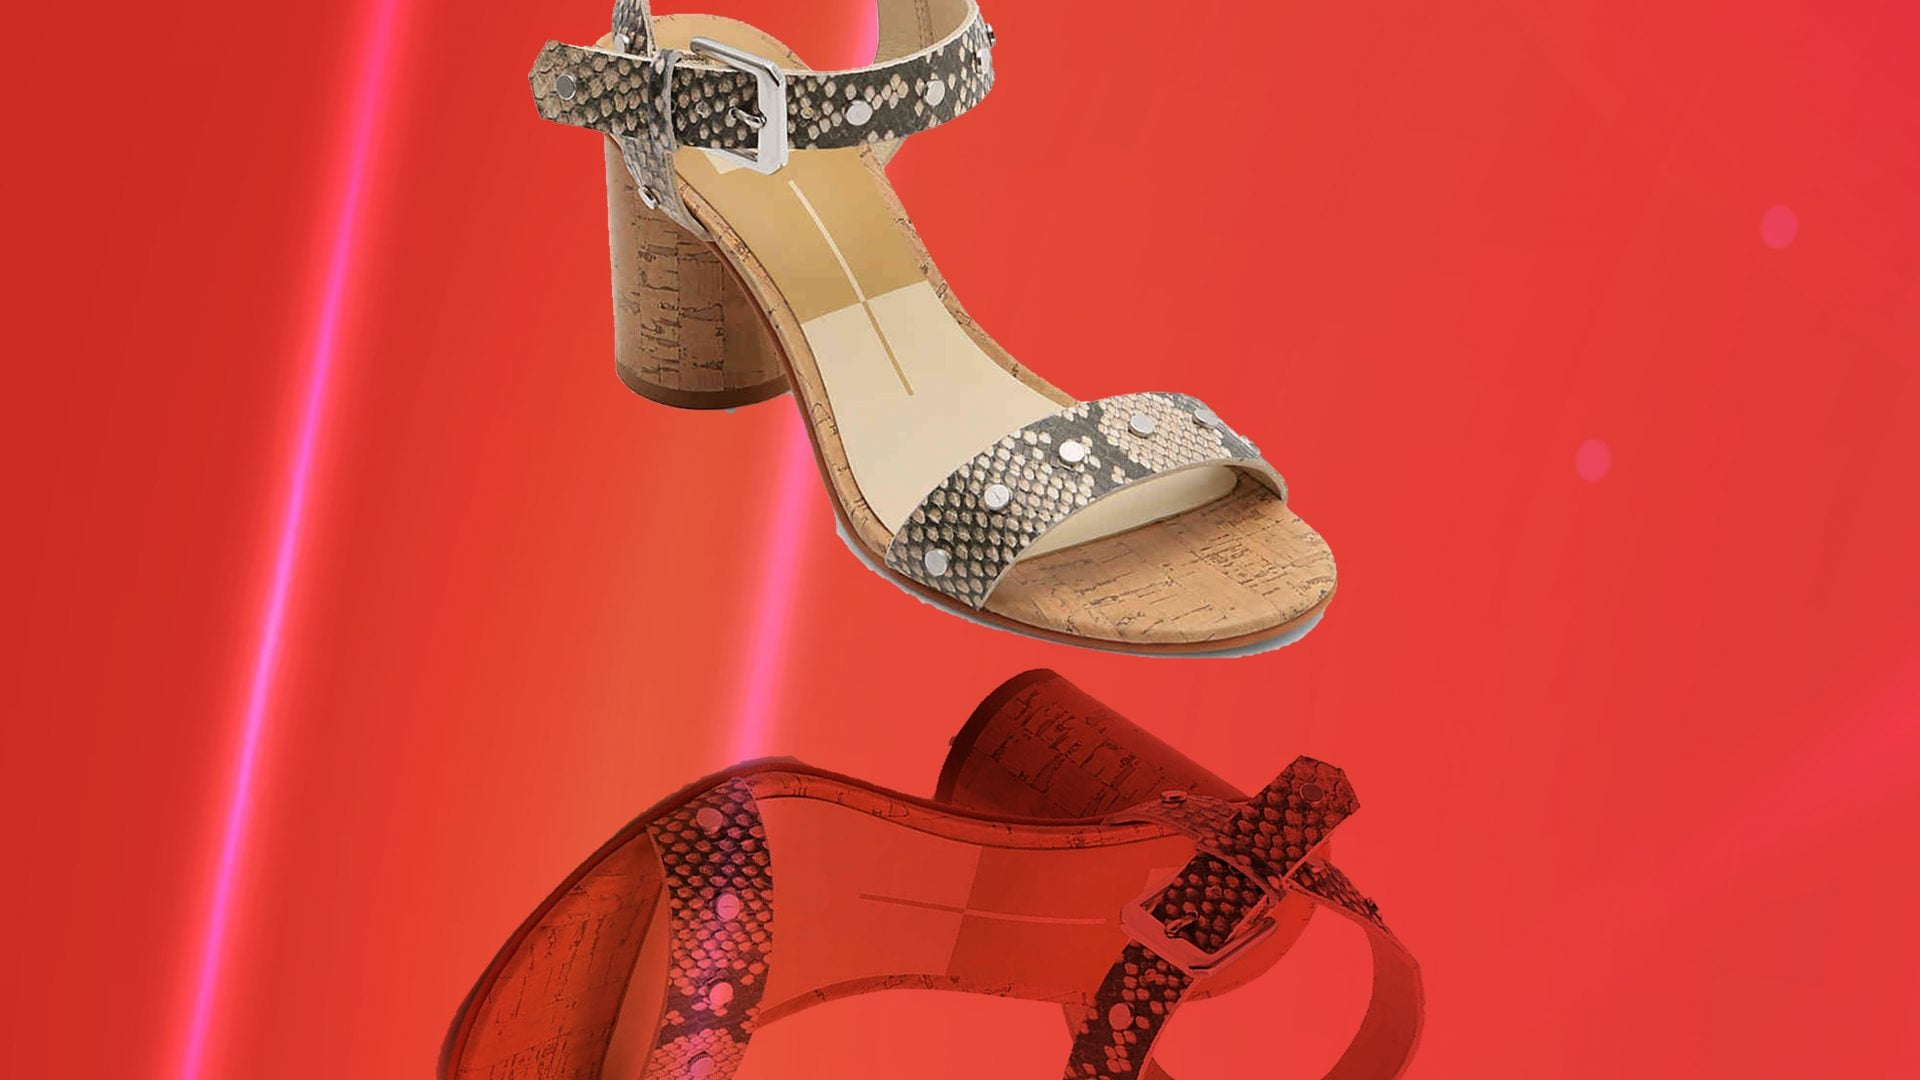 These Fierce $80 Snake-Print Heels Are My New Go-To